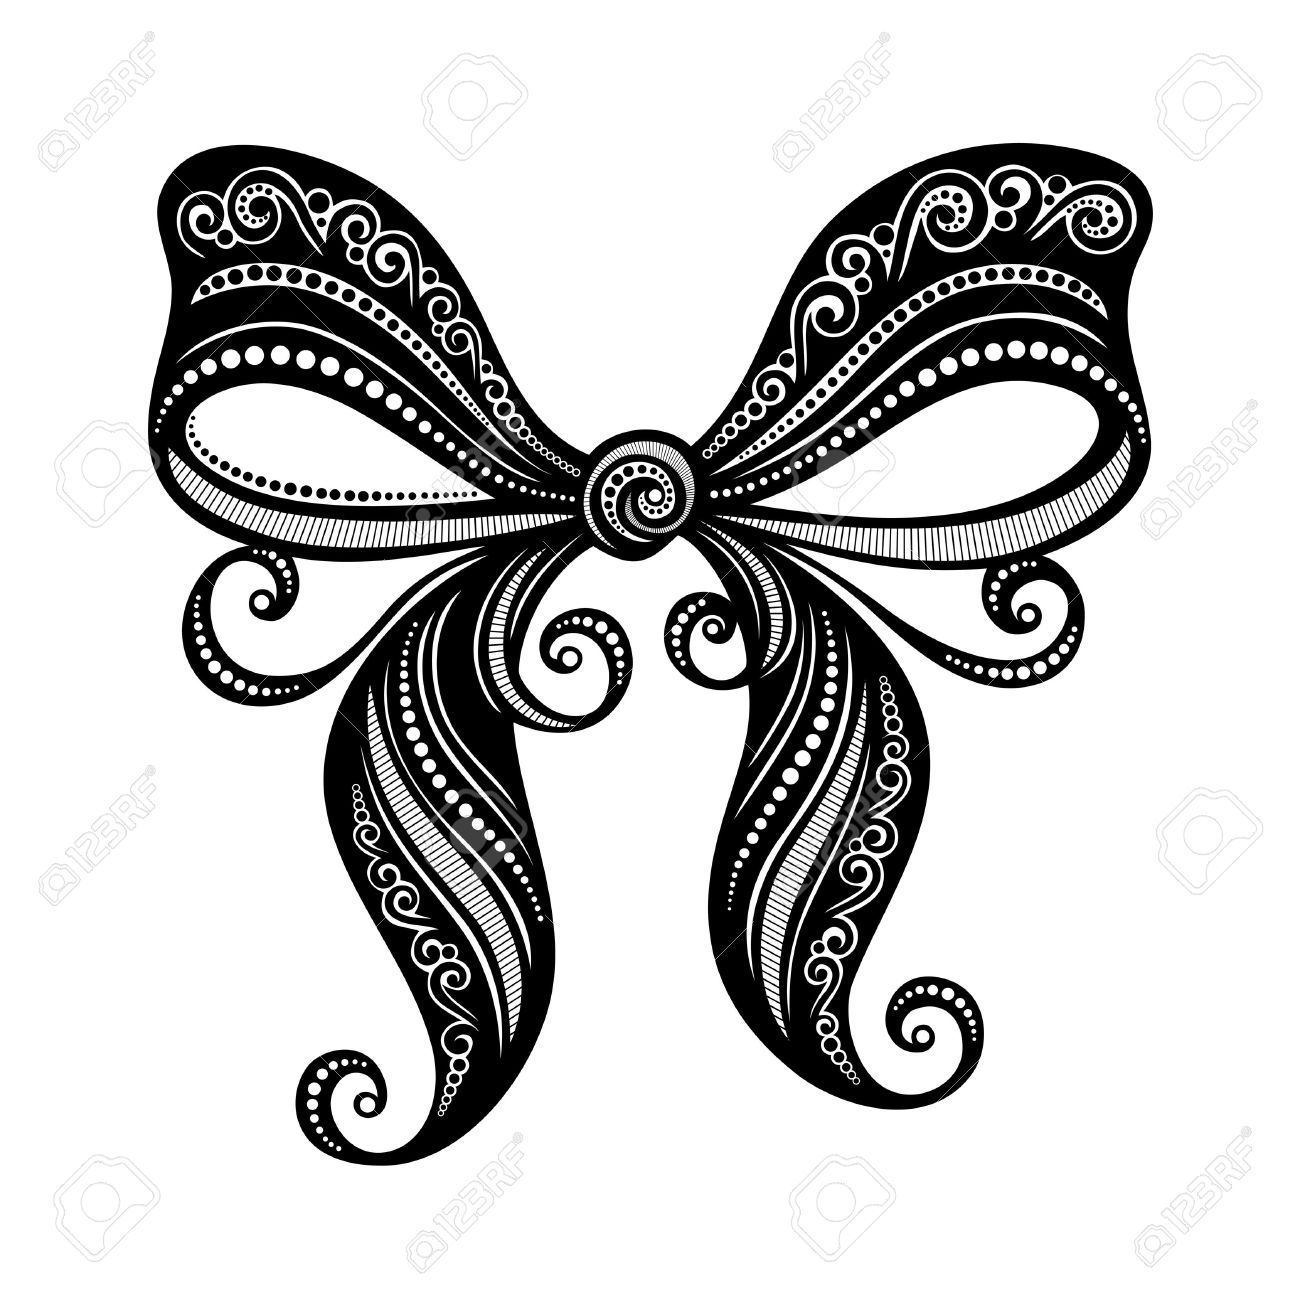 ornamental decorative bow vector patterned design royalty free rh 123rf com bow vector free bow vector black and white